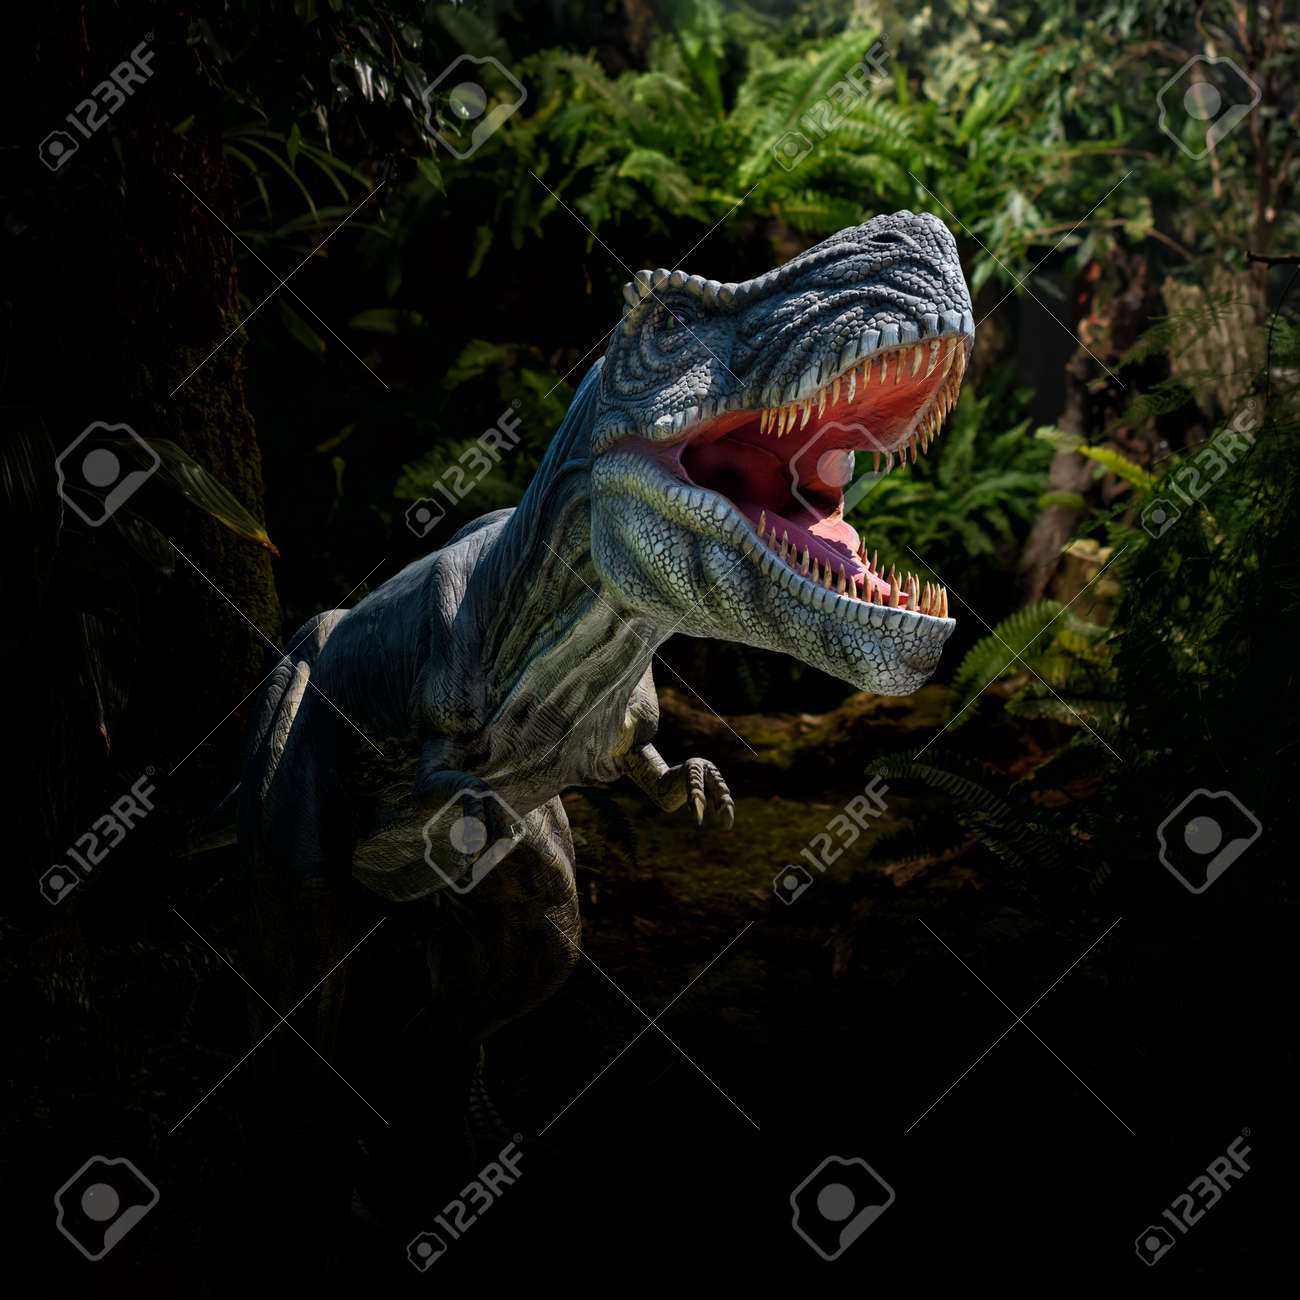 Closeup view of an angry T-Rex dinosaur figurine in jungle. Monstrous animal with open mouth and sharp teeth - 161598284